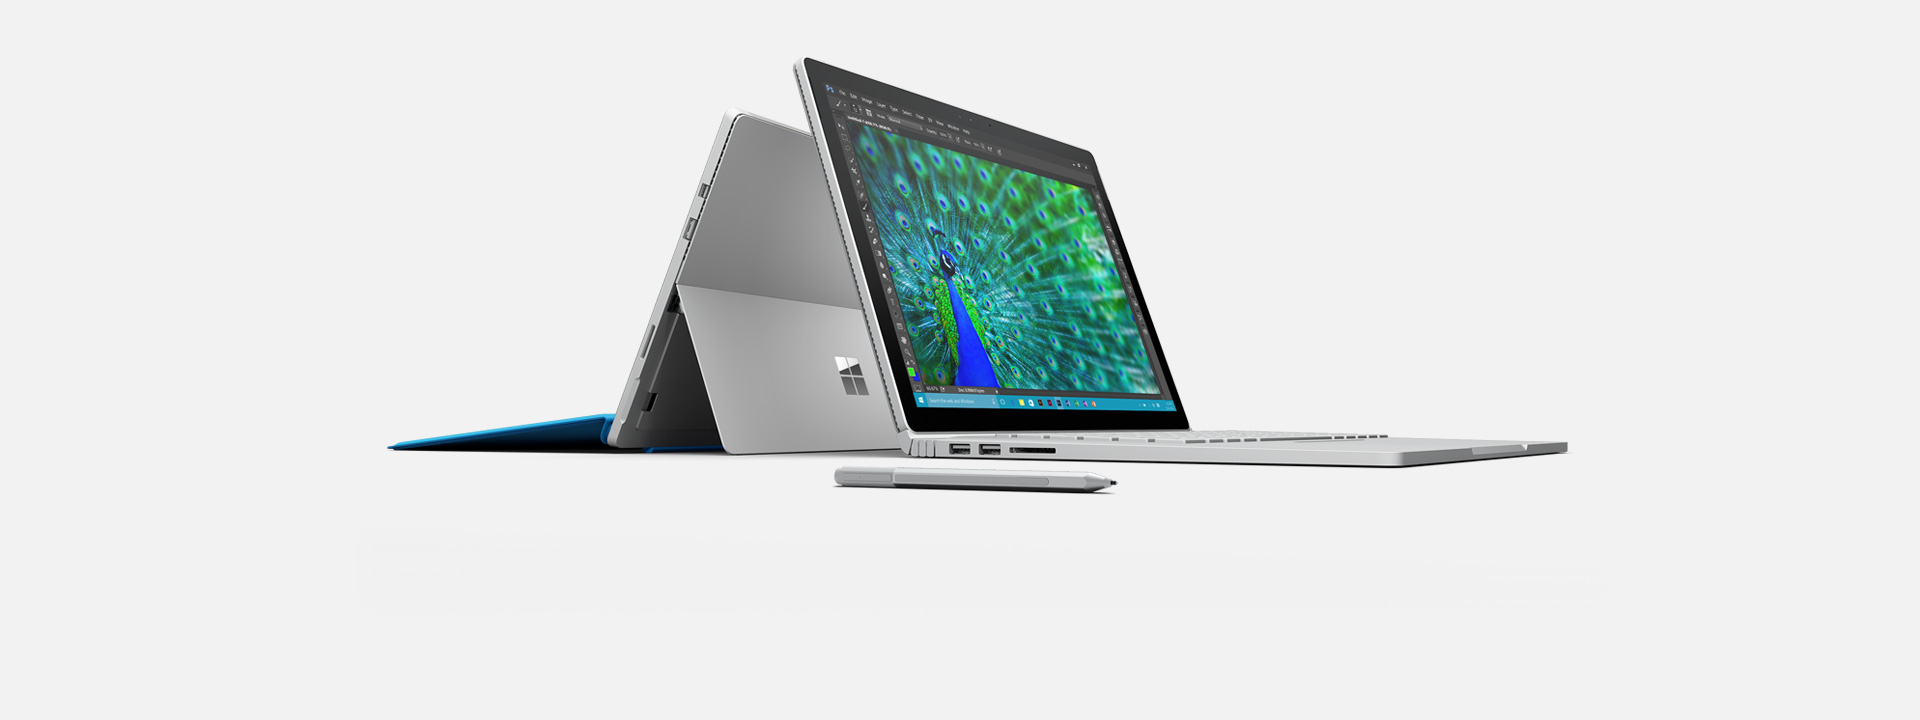 Surface Book and Surface Pro 4, learn more